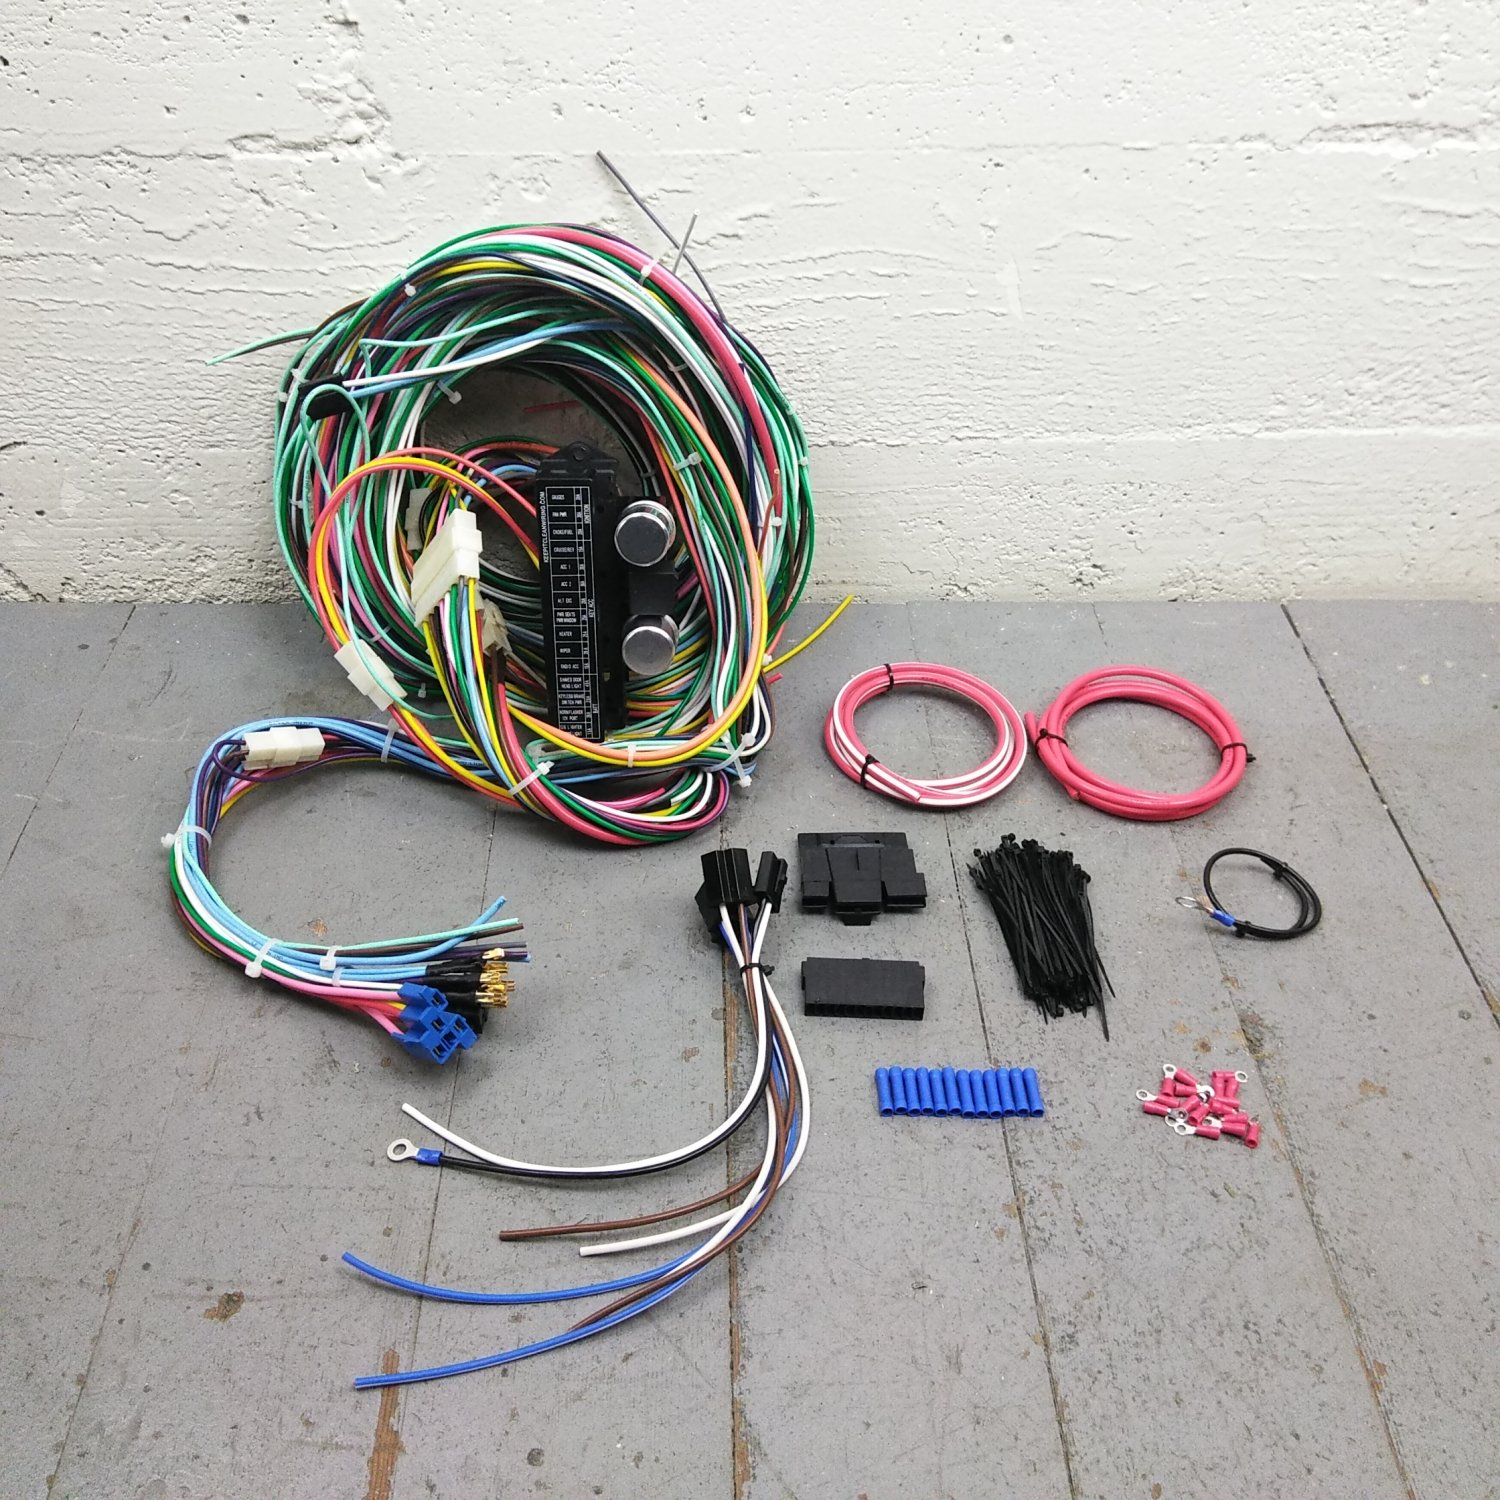 1963 dodge dart wiring harness kit group electrical schemes ron francis advantage wiring diagram dodge wiring diagram, fully laminated